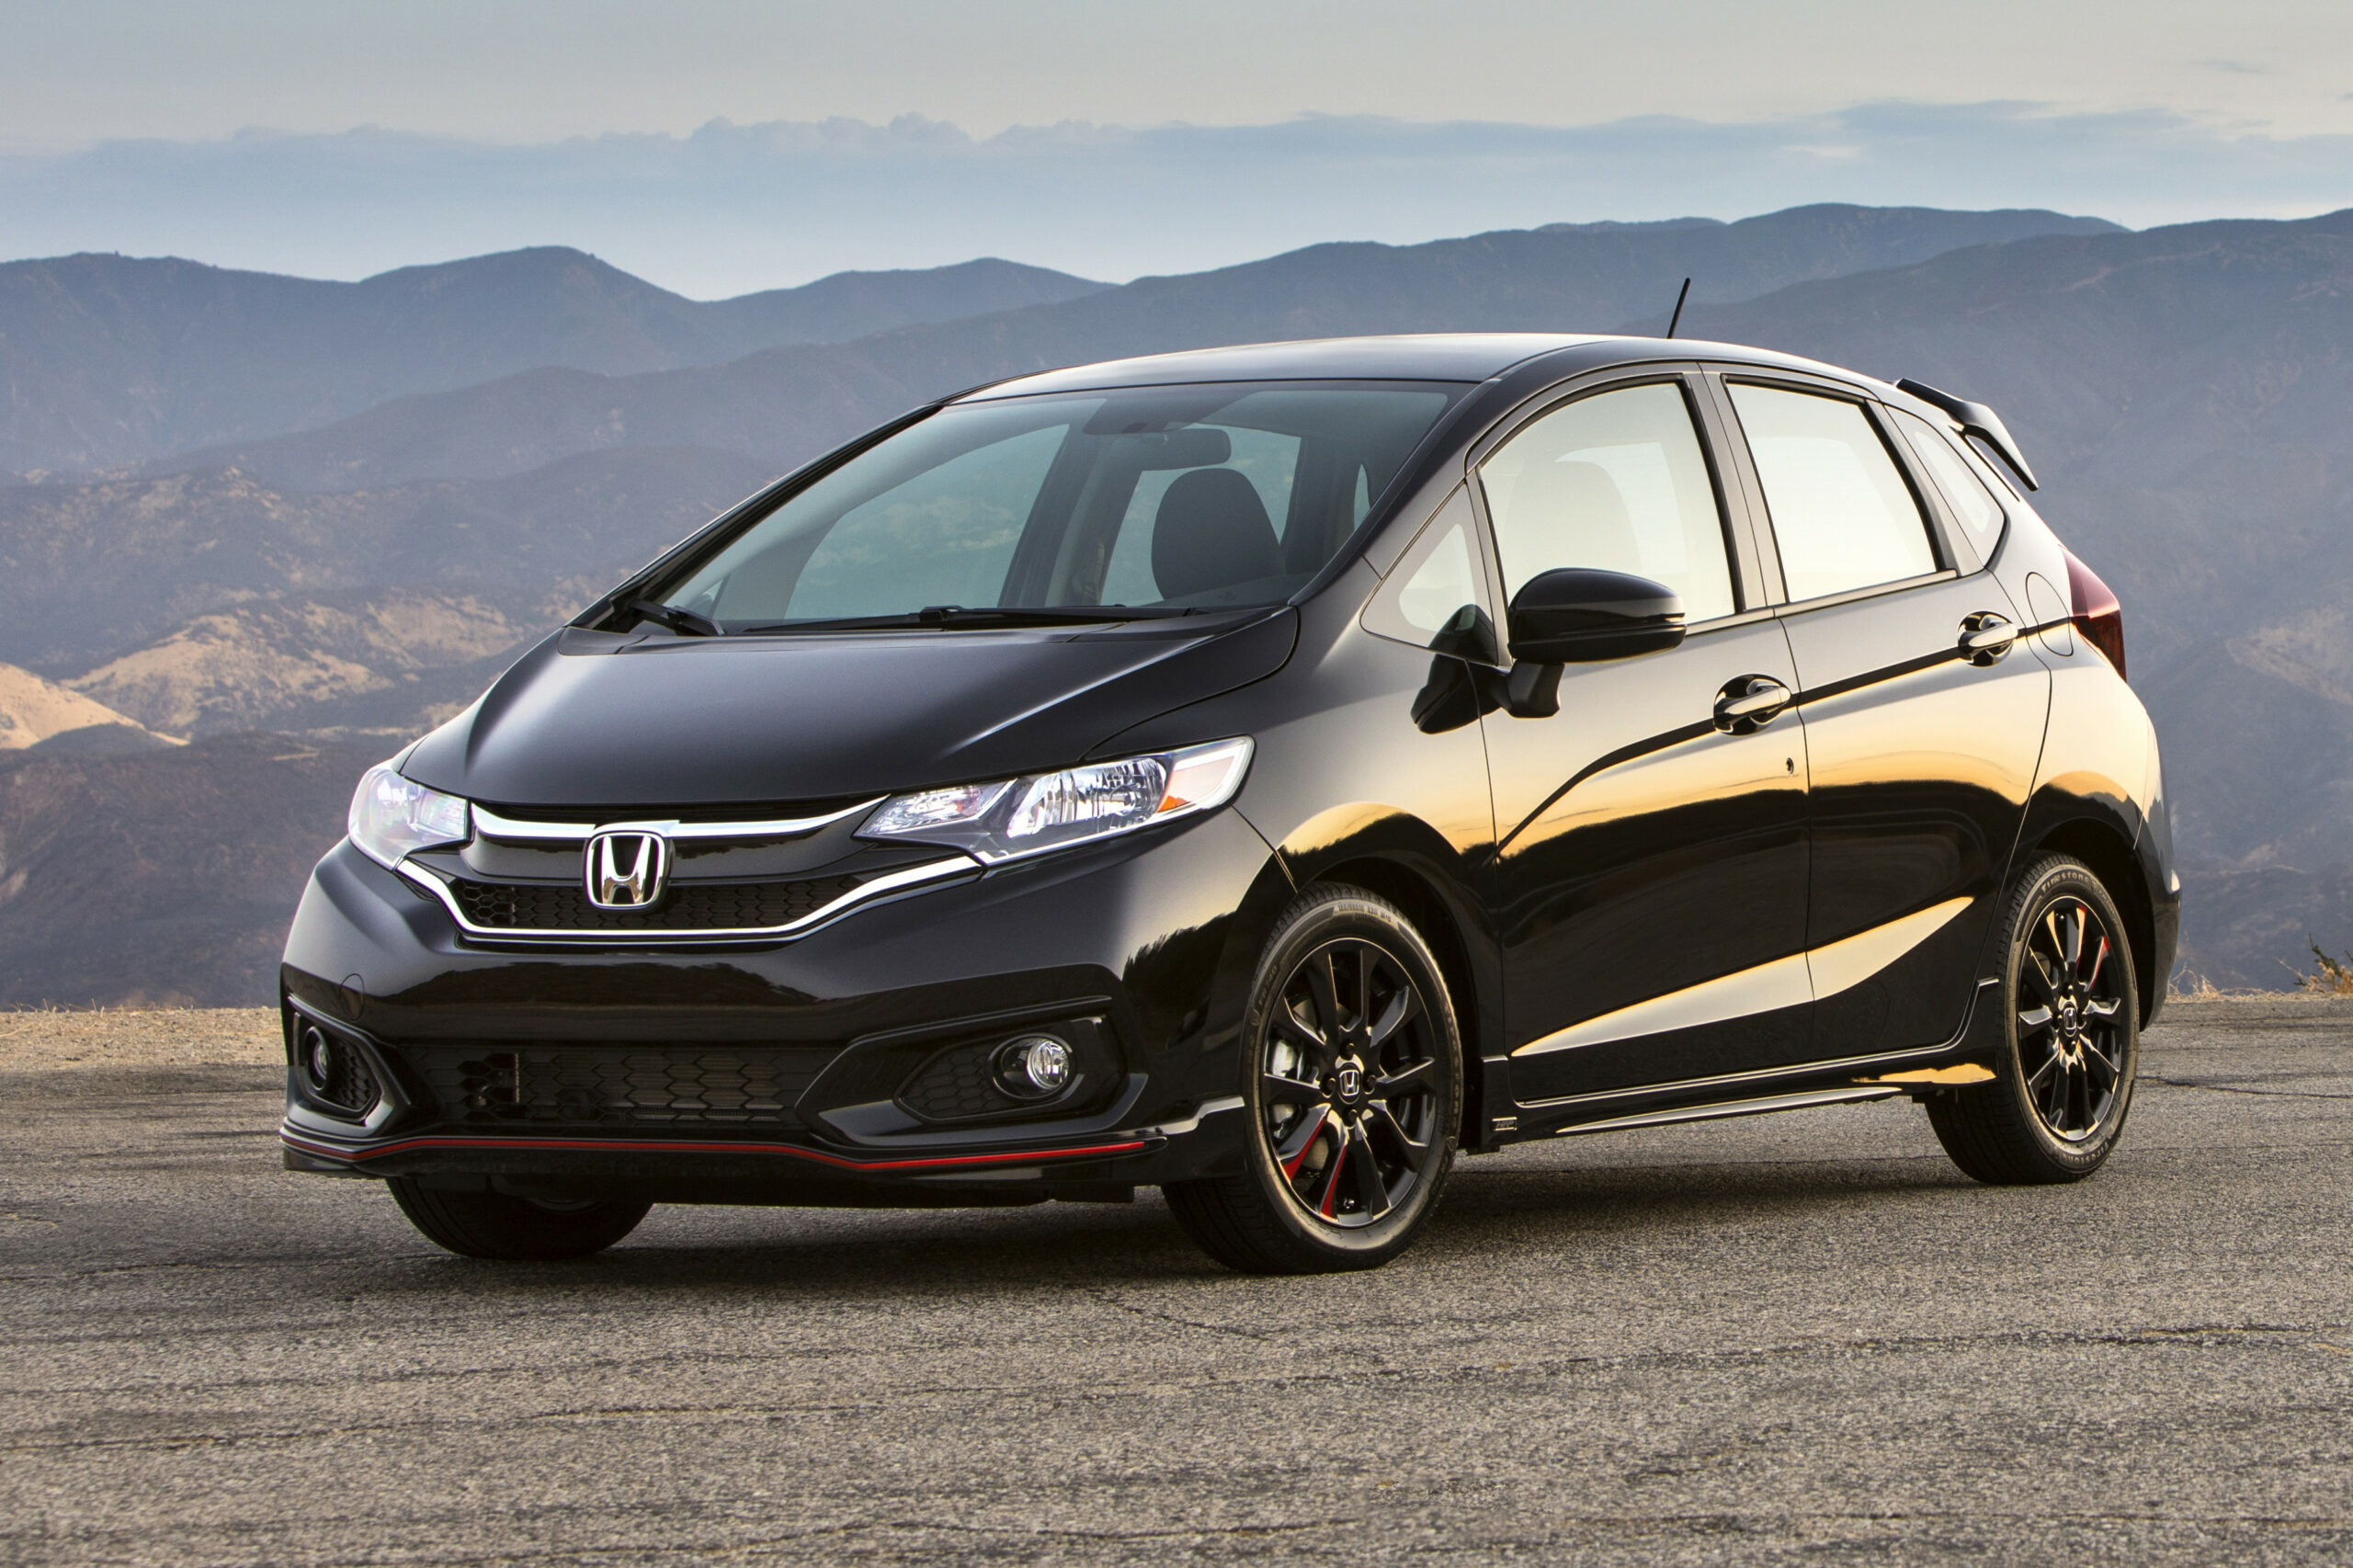 Honda Fit: Which Should You Buy, 7 or 7? | News | Cars.com